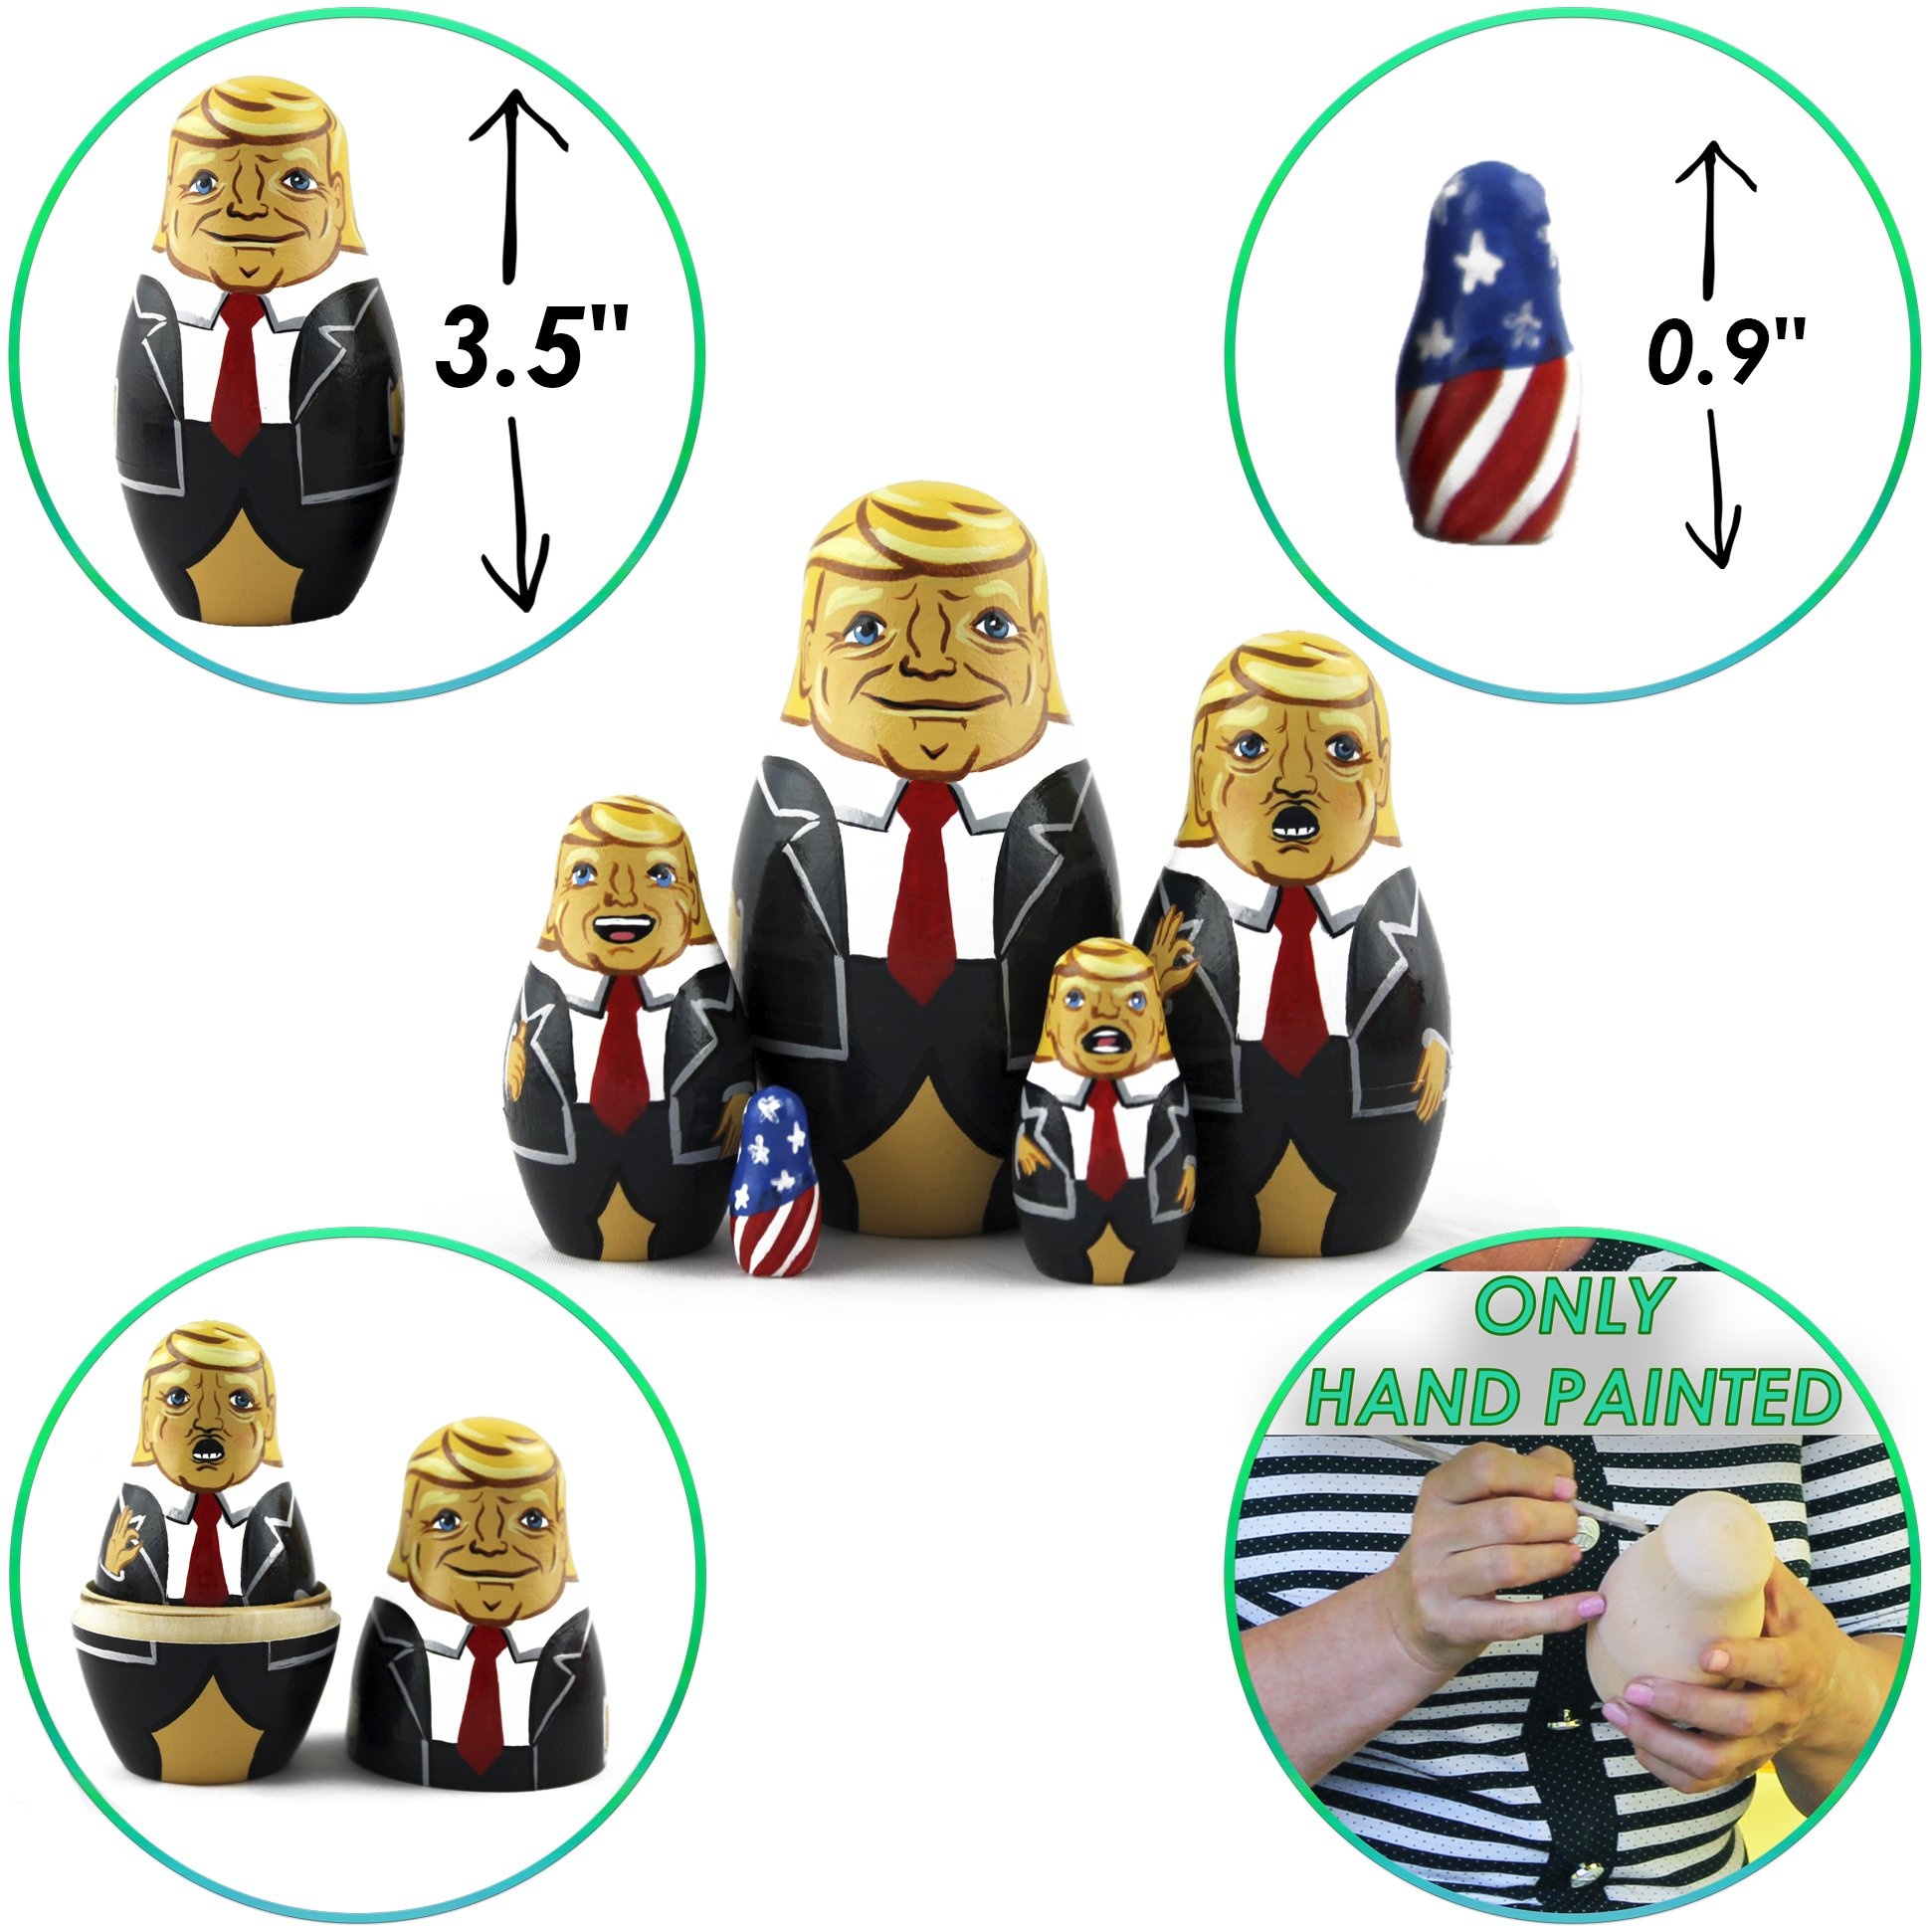 Donald Trump Gifts - Donald Trump Funny Toy Doll - Trump Nesting Dolls Gag Gifts - Set 5 pc 3.7 inches by MATRYOSHKA&HANDICRAFT (Image #5)